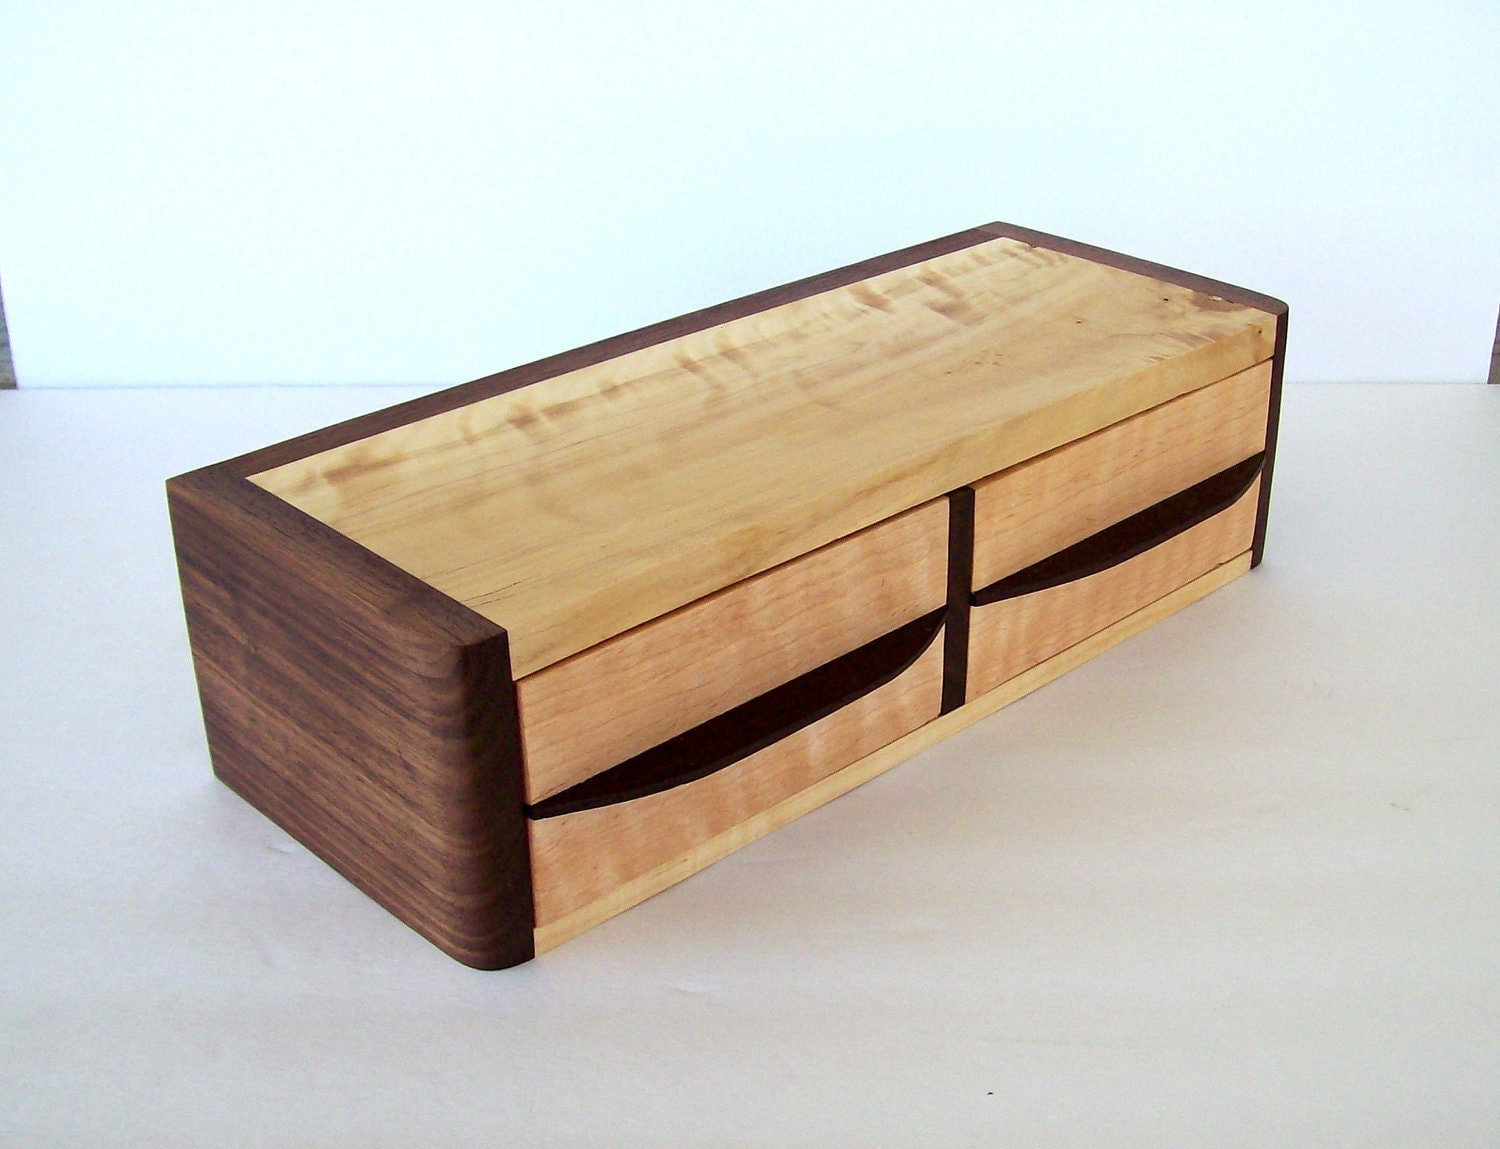 Very Impressive portraiture of wood jewelry box two drawer with wenge pulls black by TKfindz with #91673A color and 1500x1149 pixels